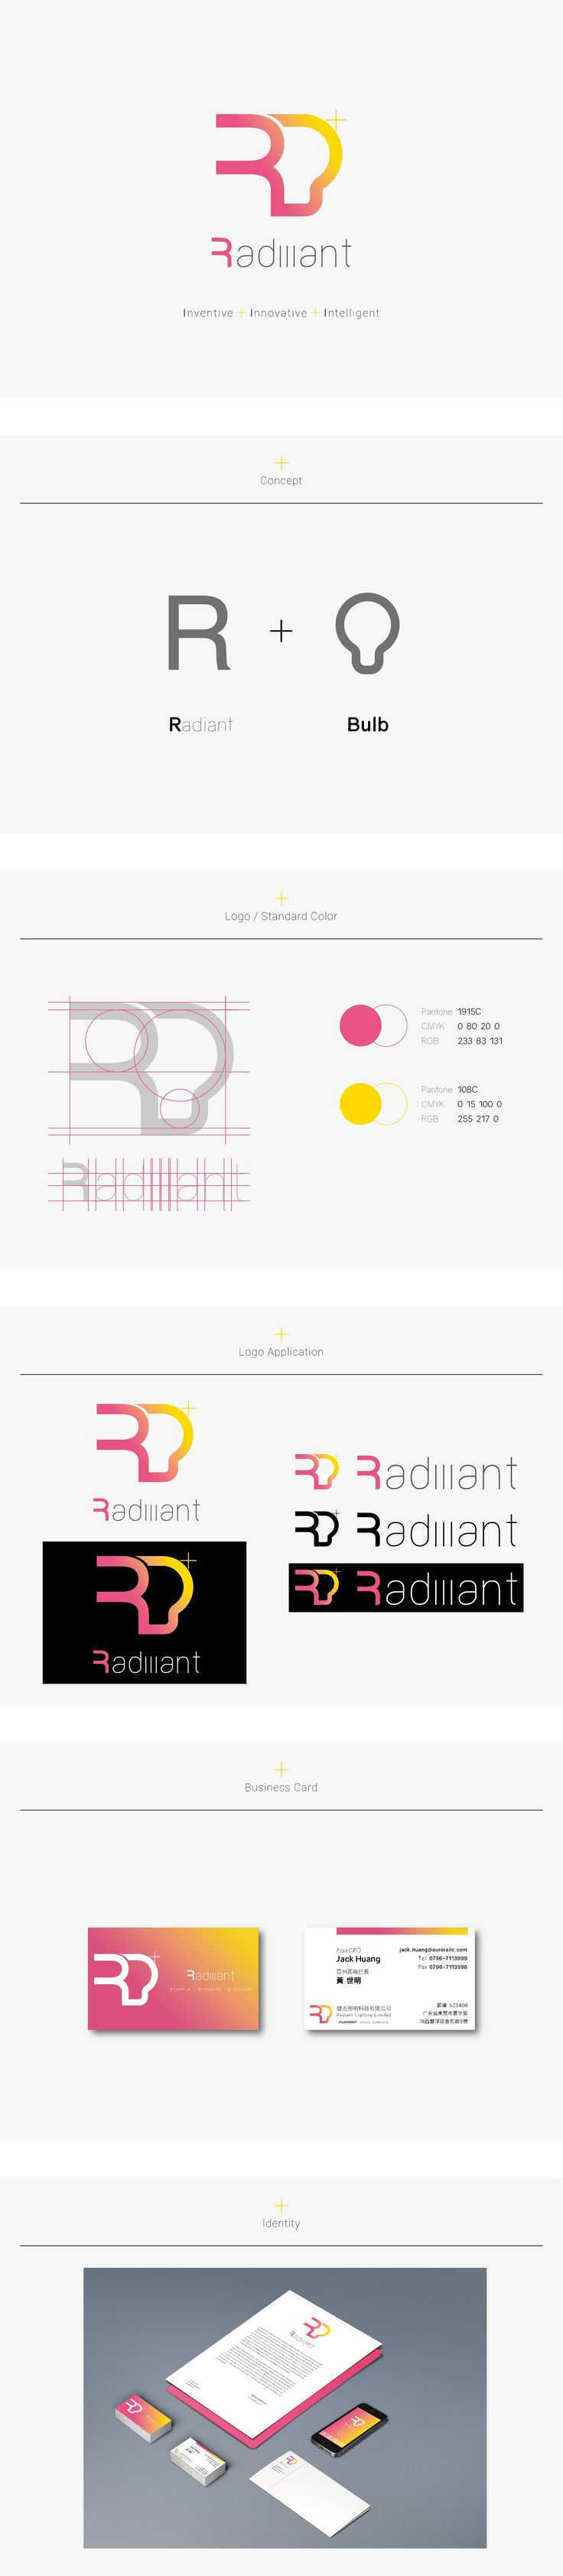 Radiiant - Logo / Identity Design -Proposal 2